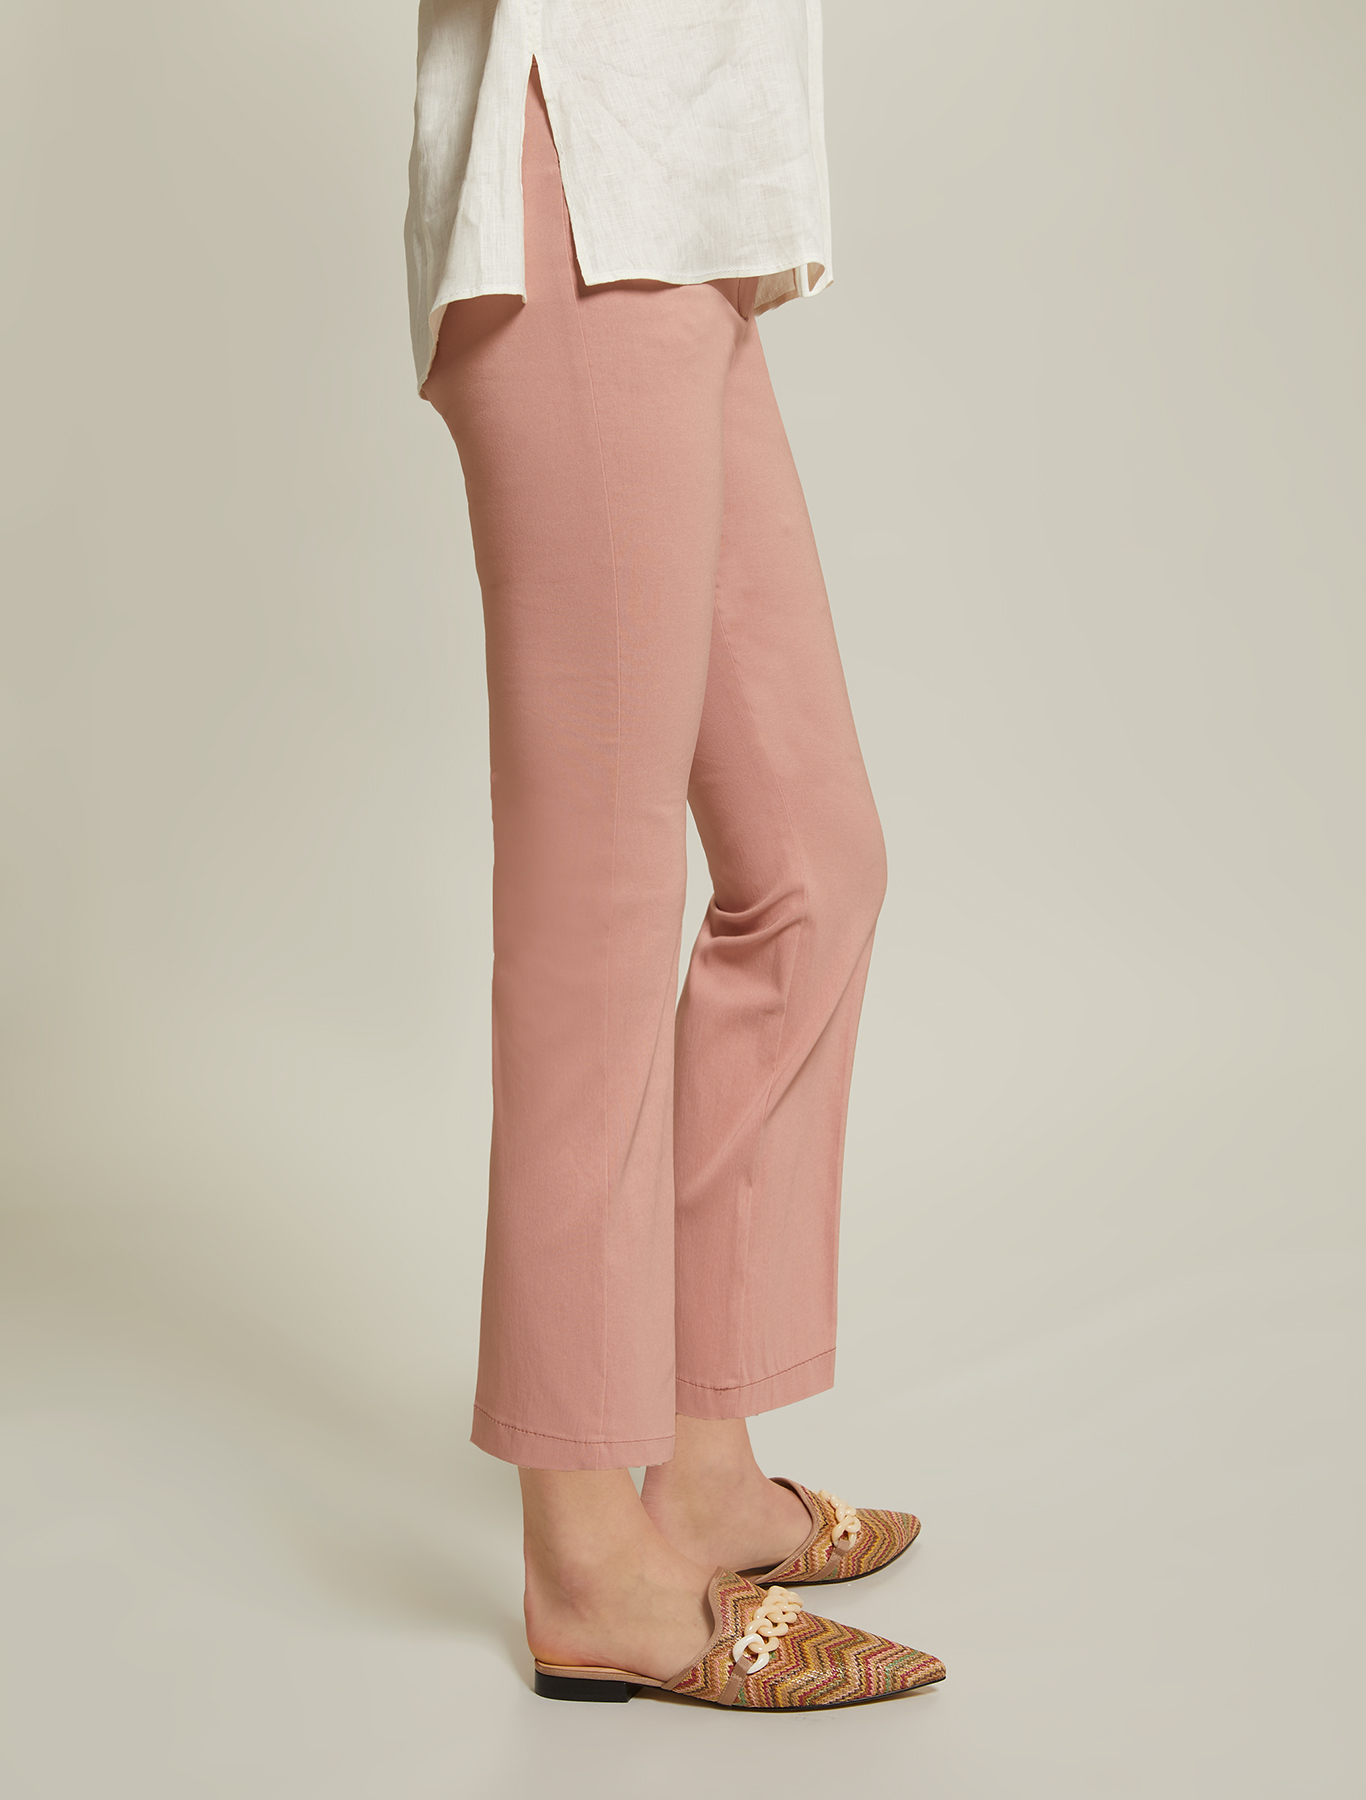 Kick-flare trousers - pink - pennyblack